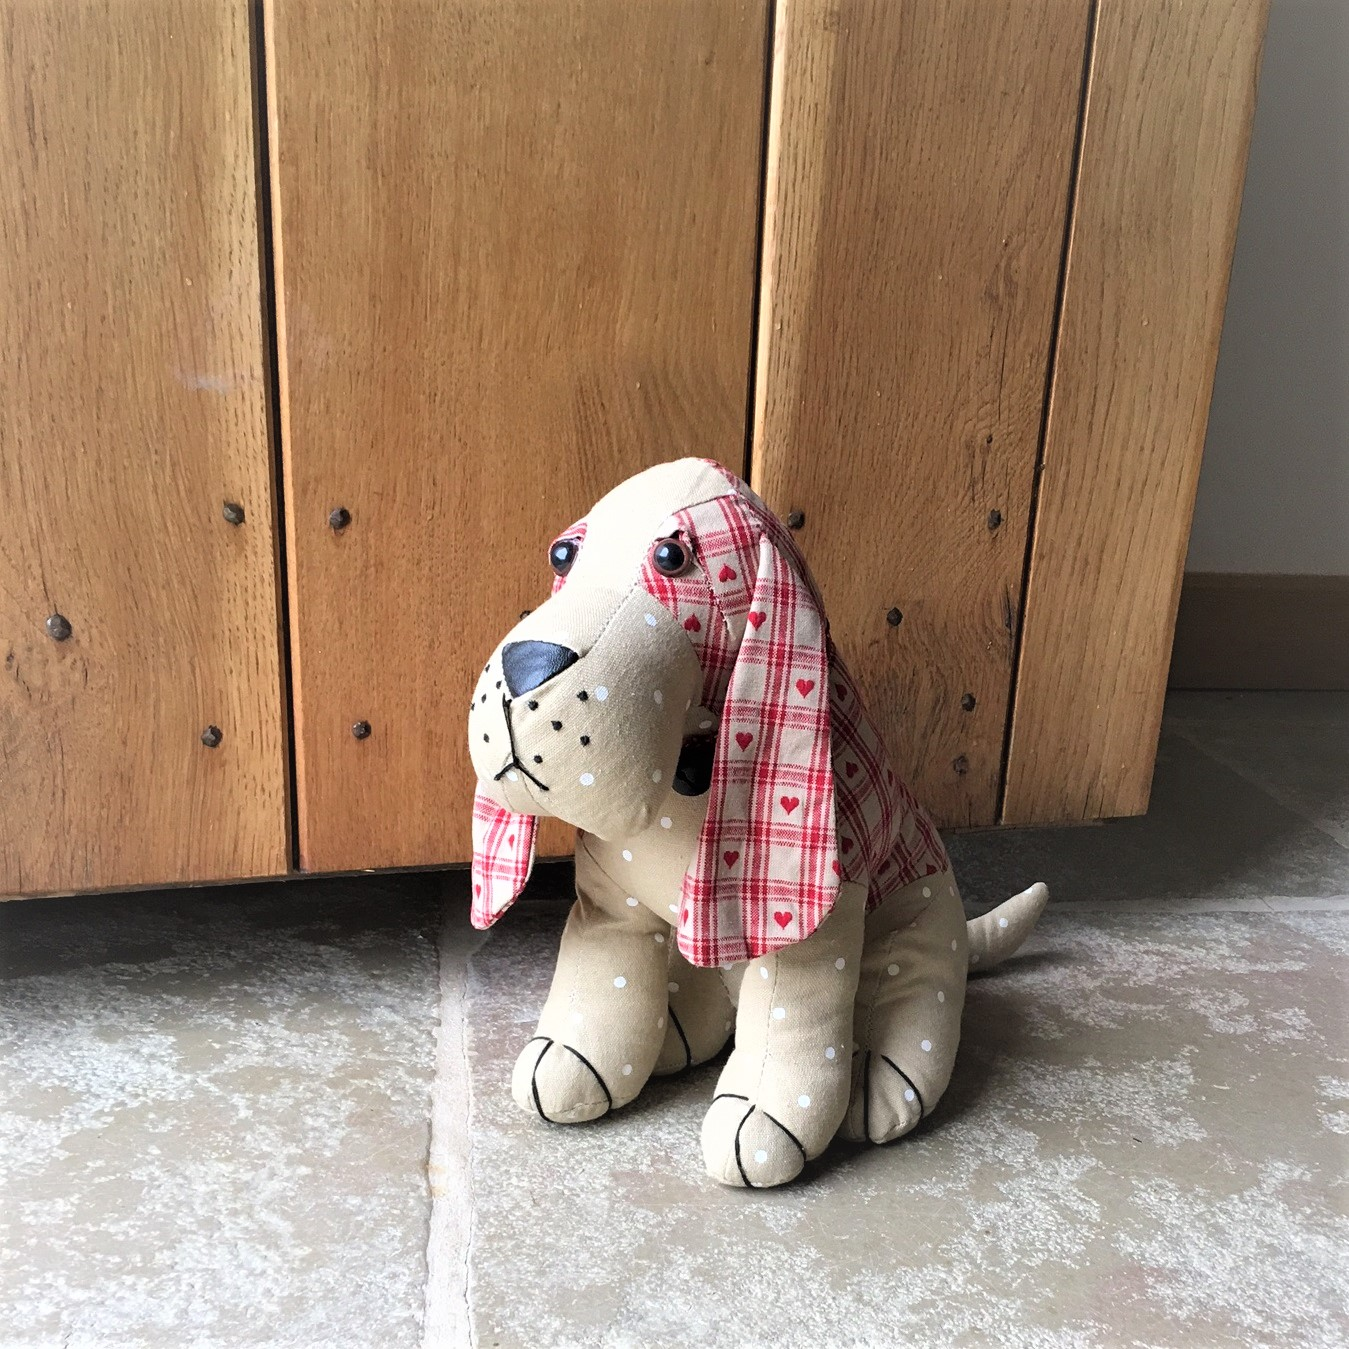 Animal Door Stops Uk Dog Doorstops Uk Toby The Dog Doorstop From Next Decor Ideas I